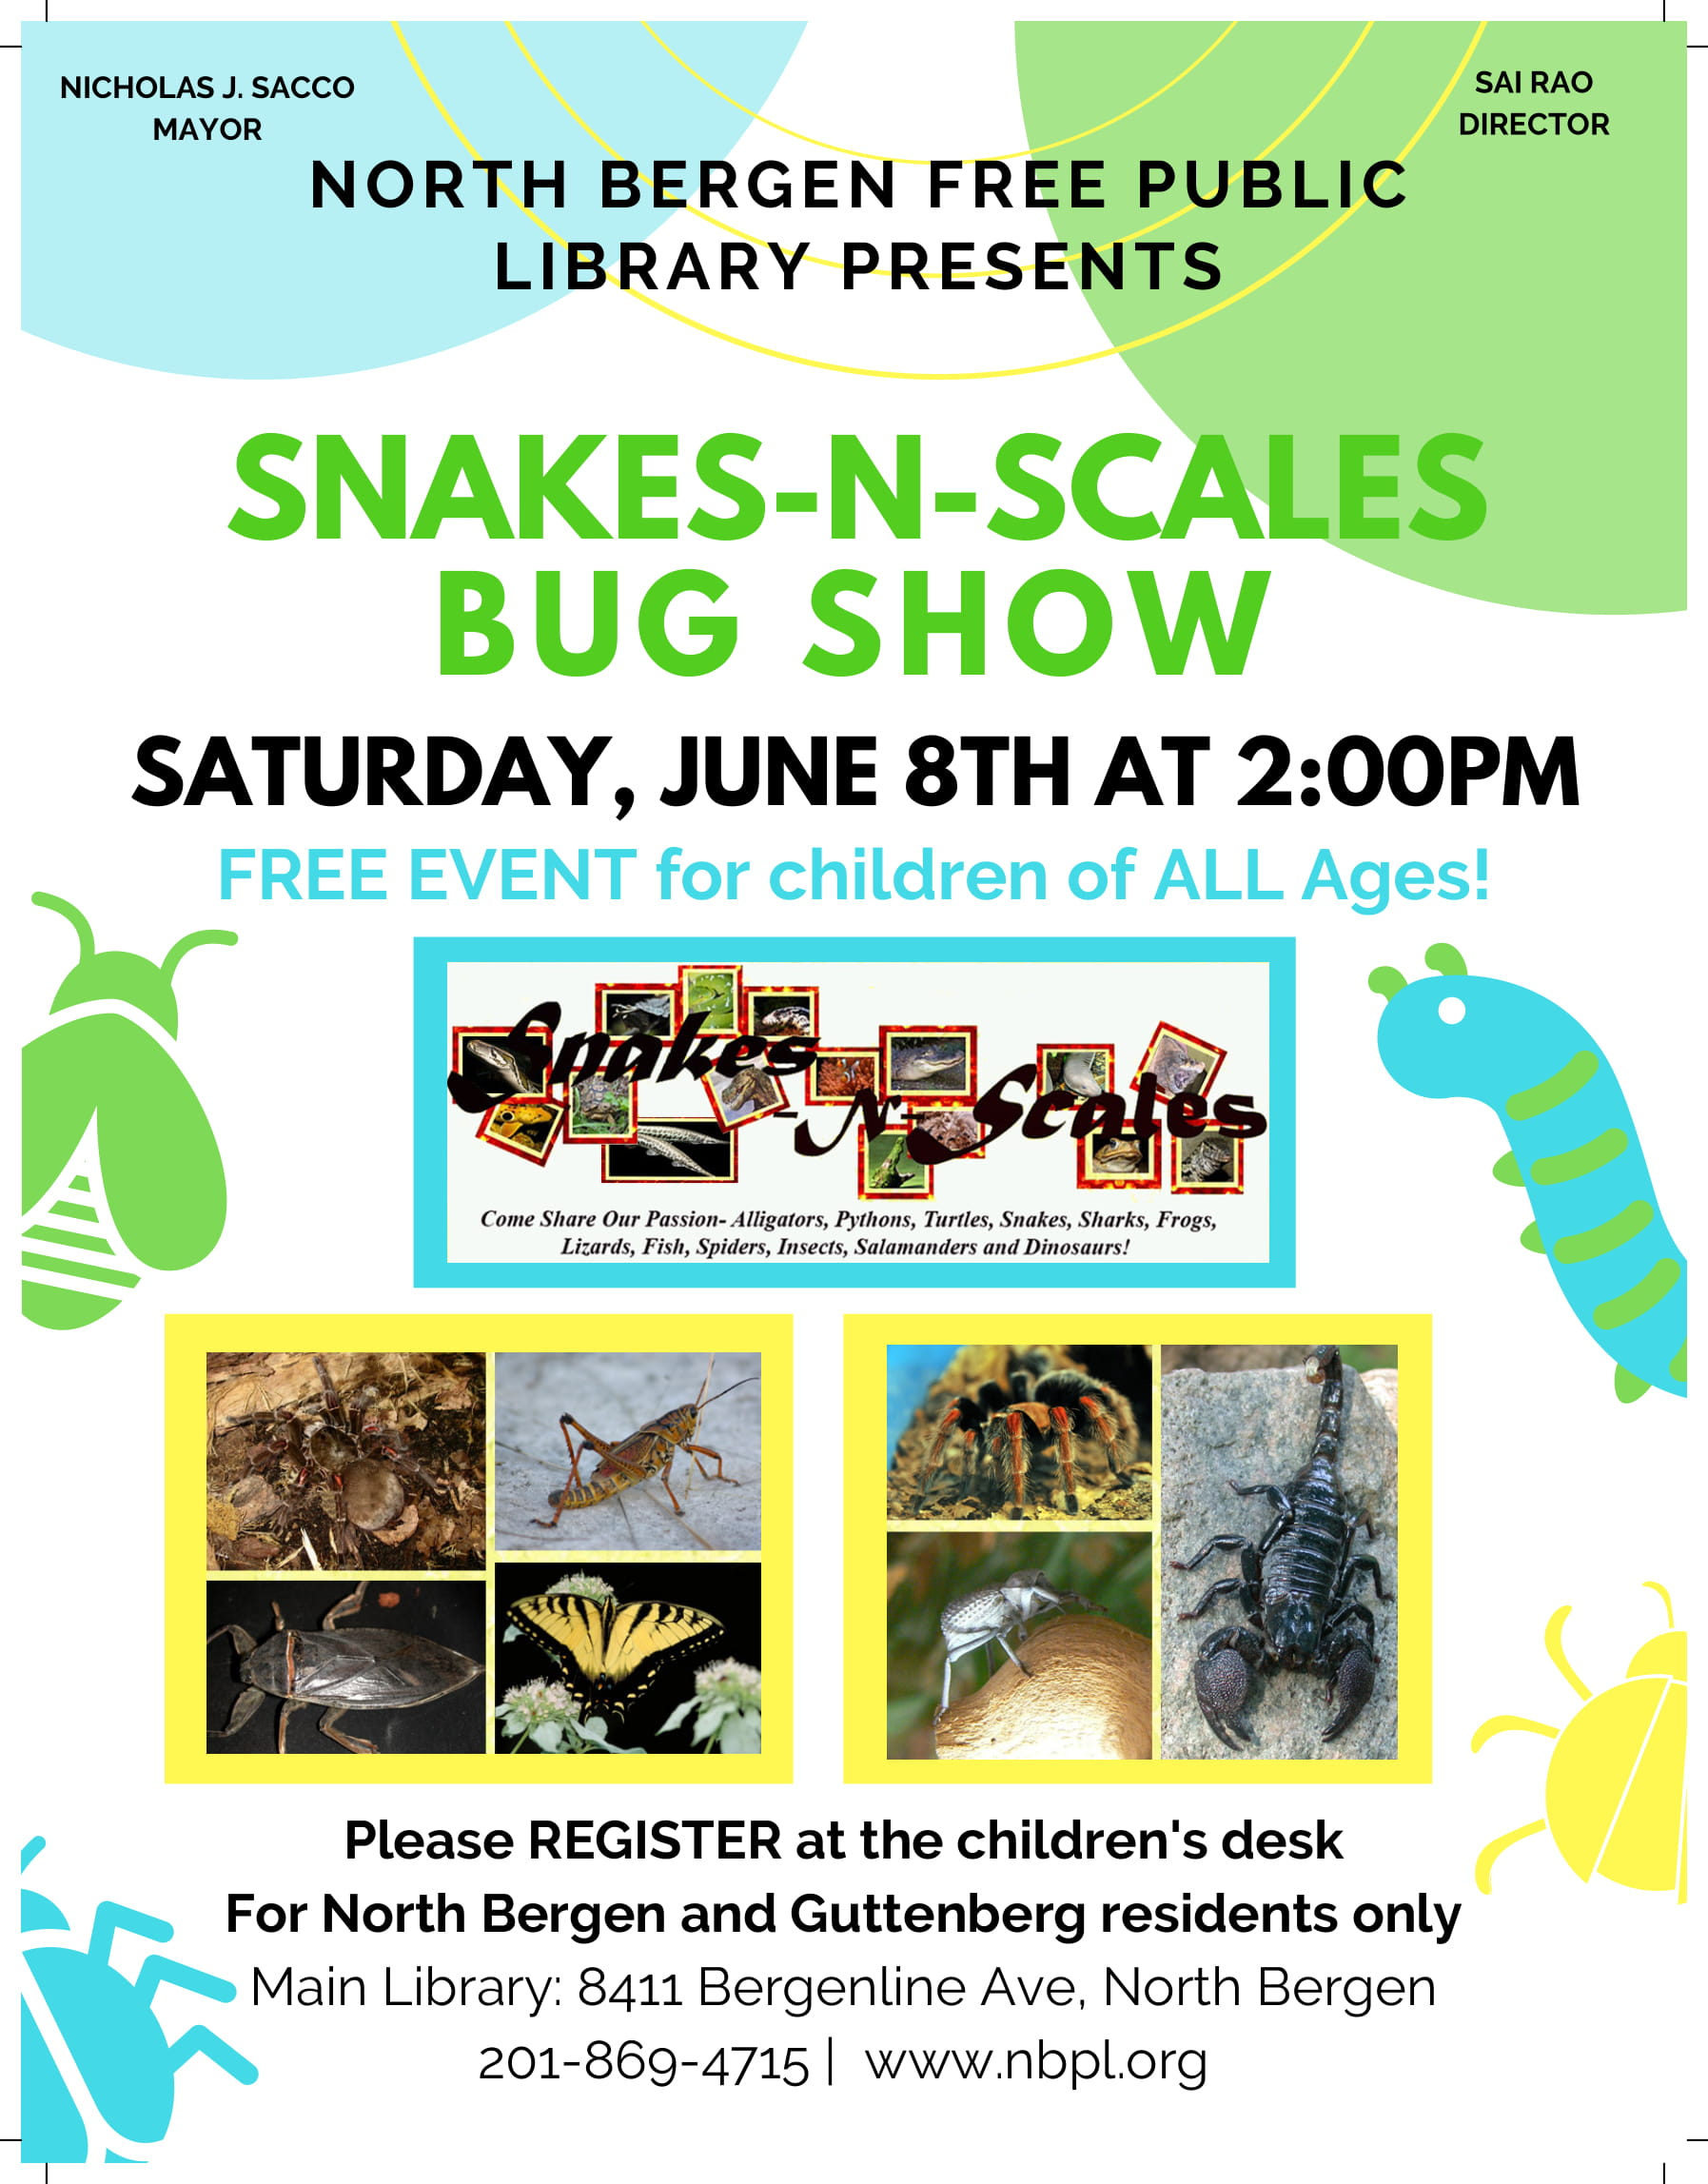 Snakes-N-Scales: Bug Show